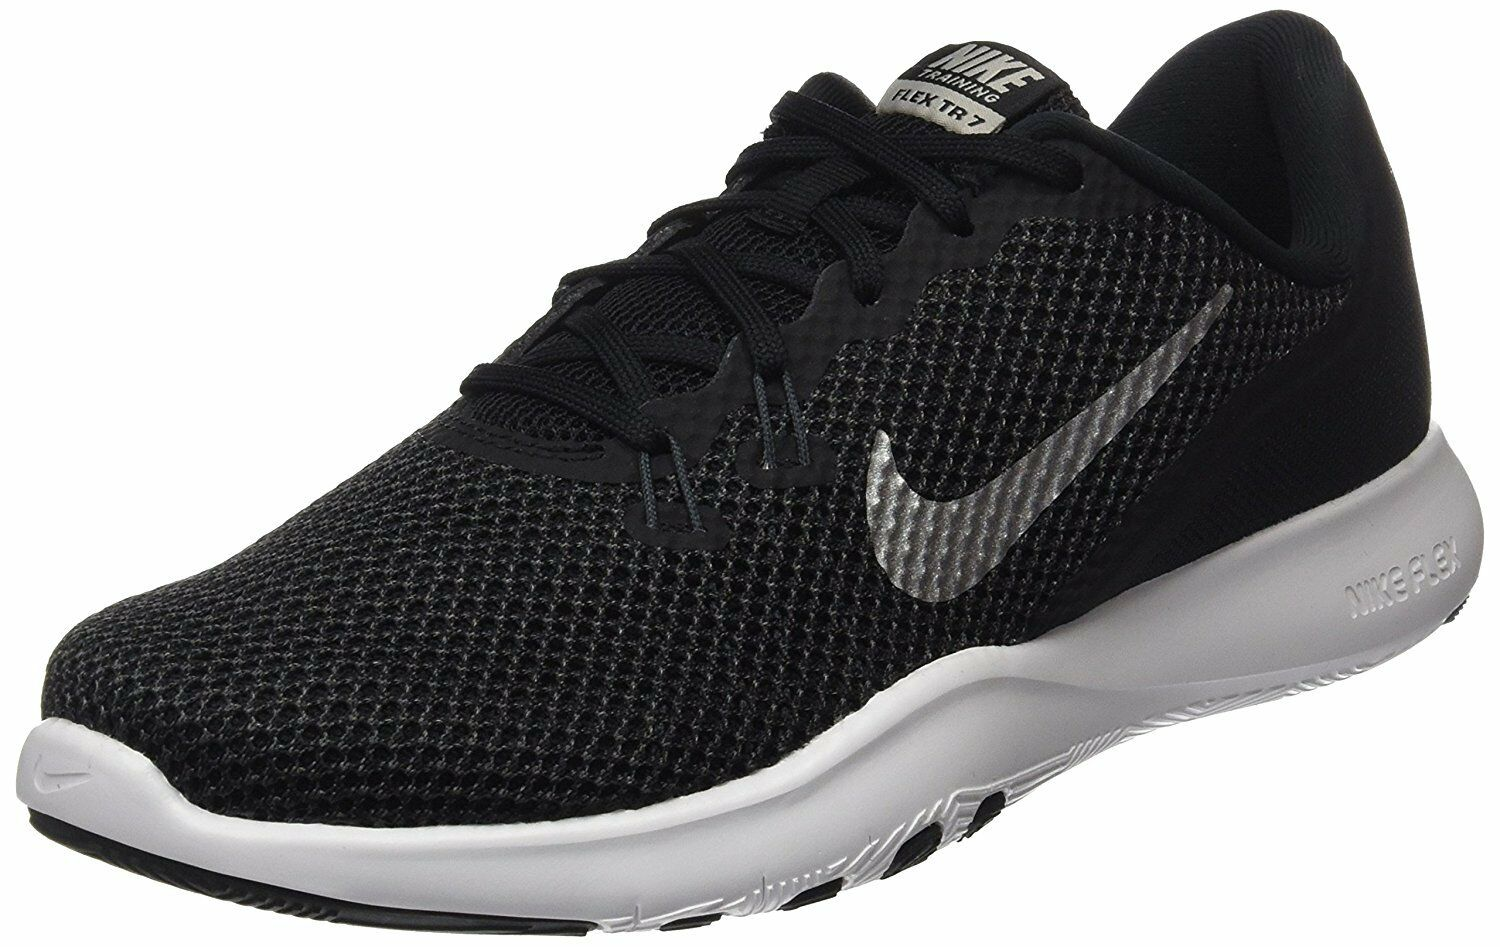 Nike Womens Flex 7 Cross Trainer Black/Metallic Silver/Anthracite/White 898479